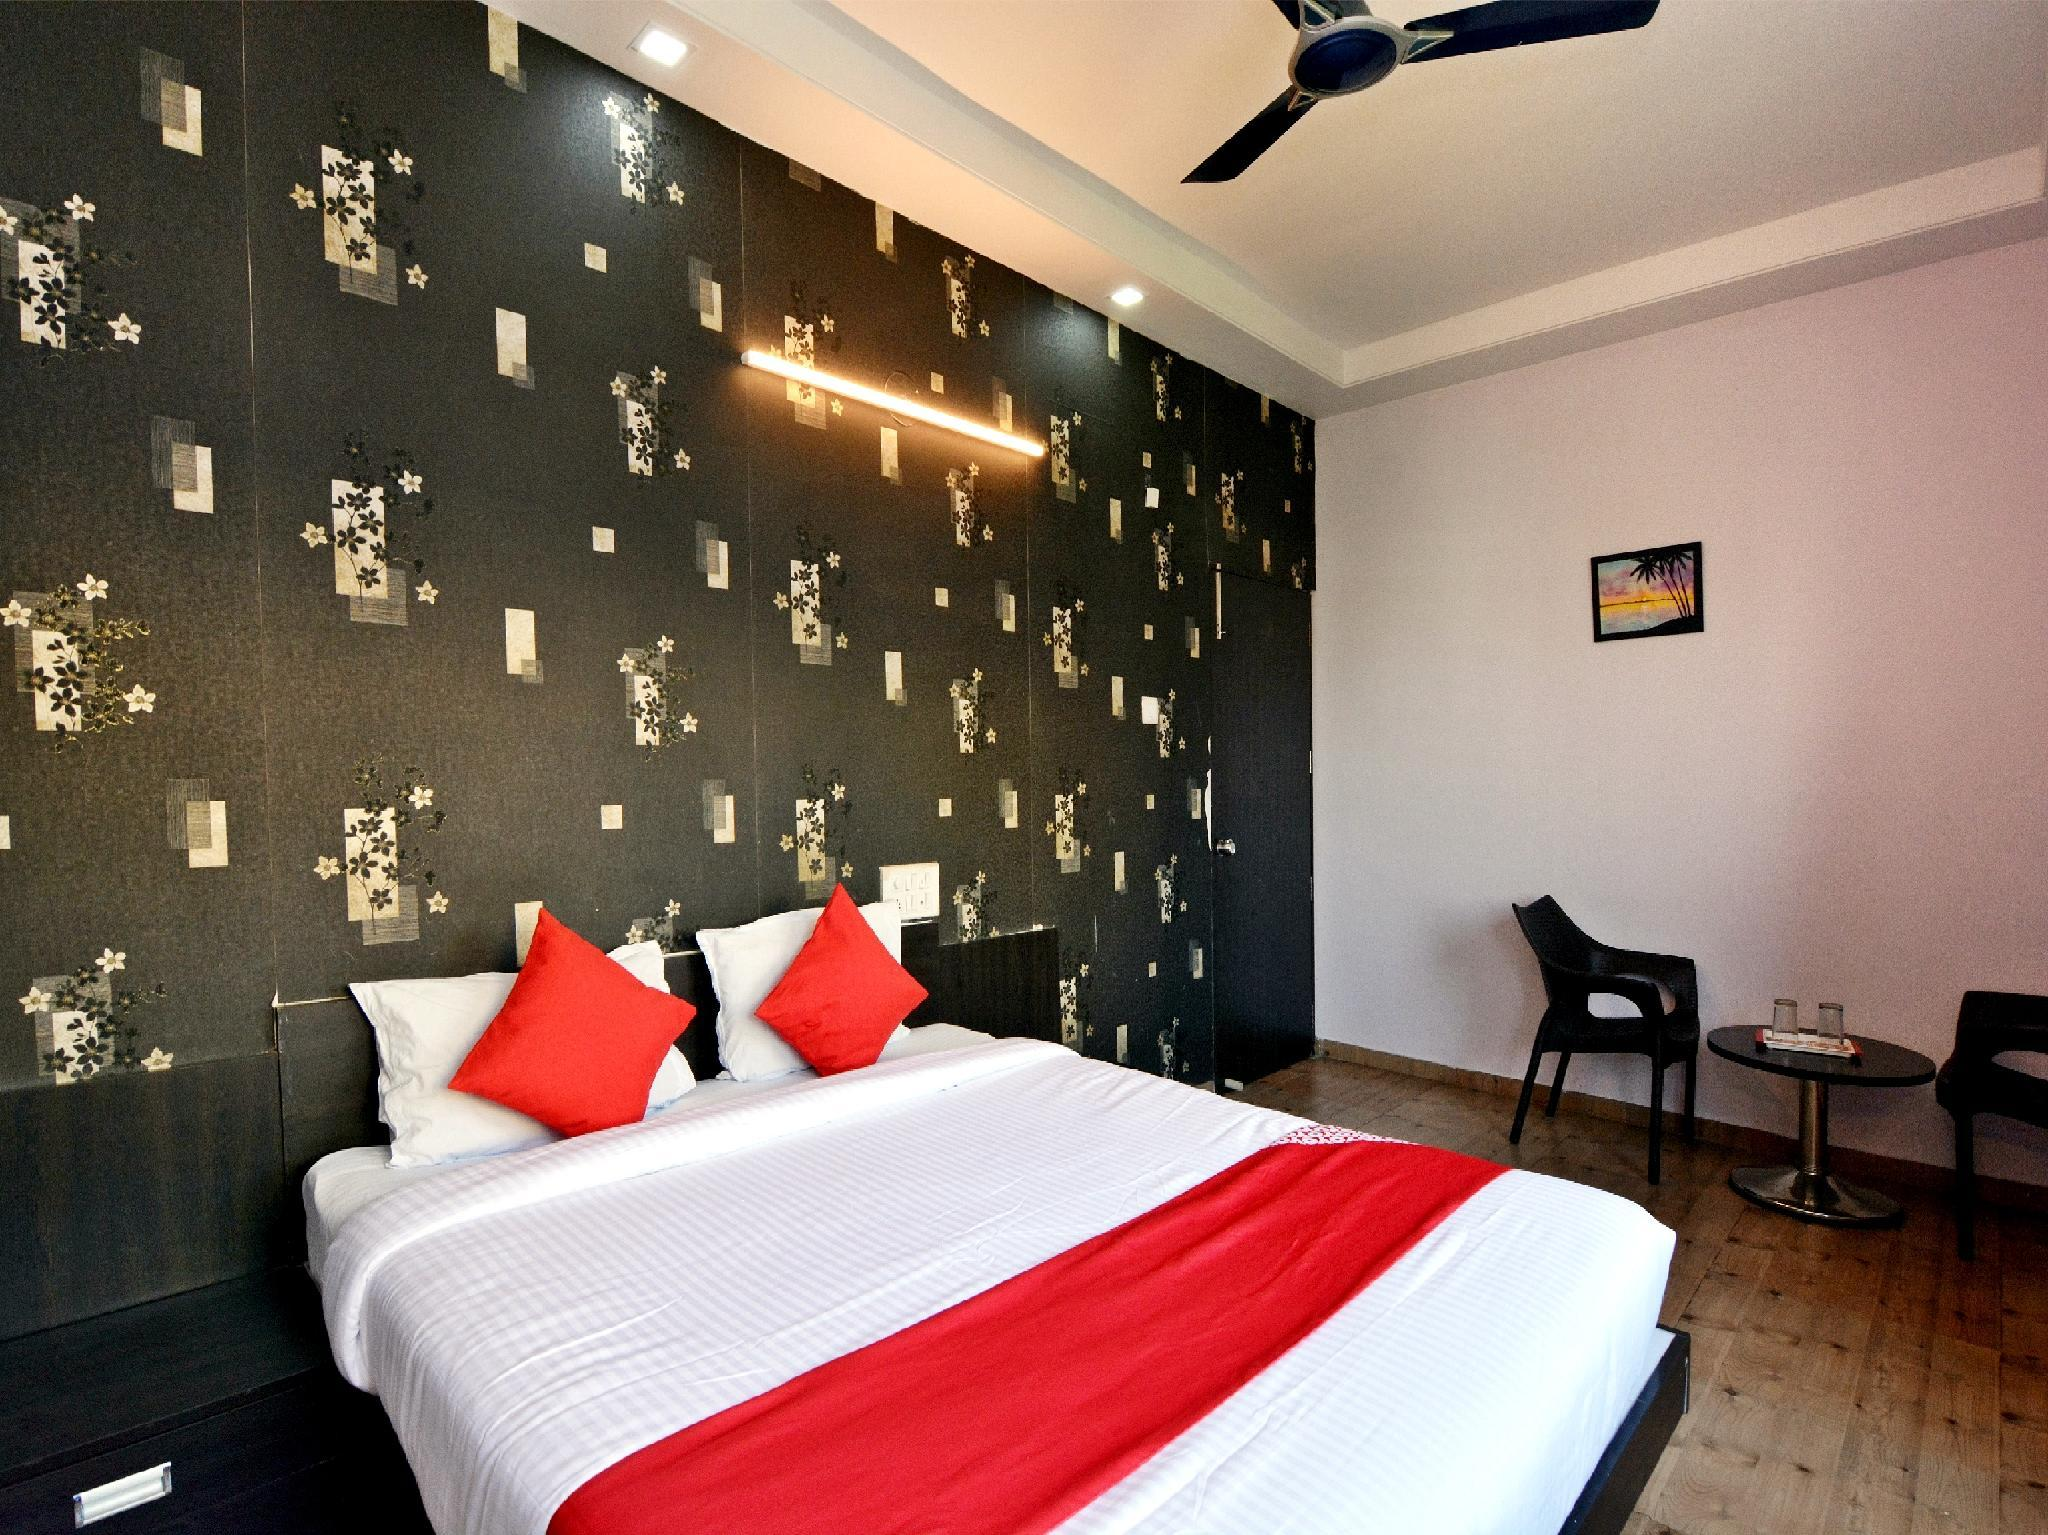 OYO 22643 Hotel Majestic Deluxe Lodging